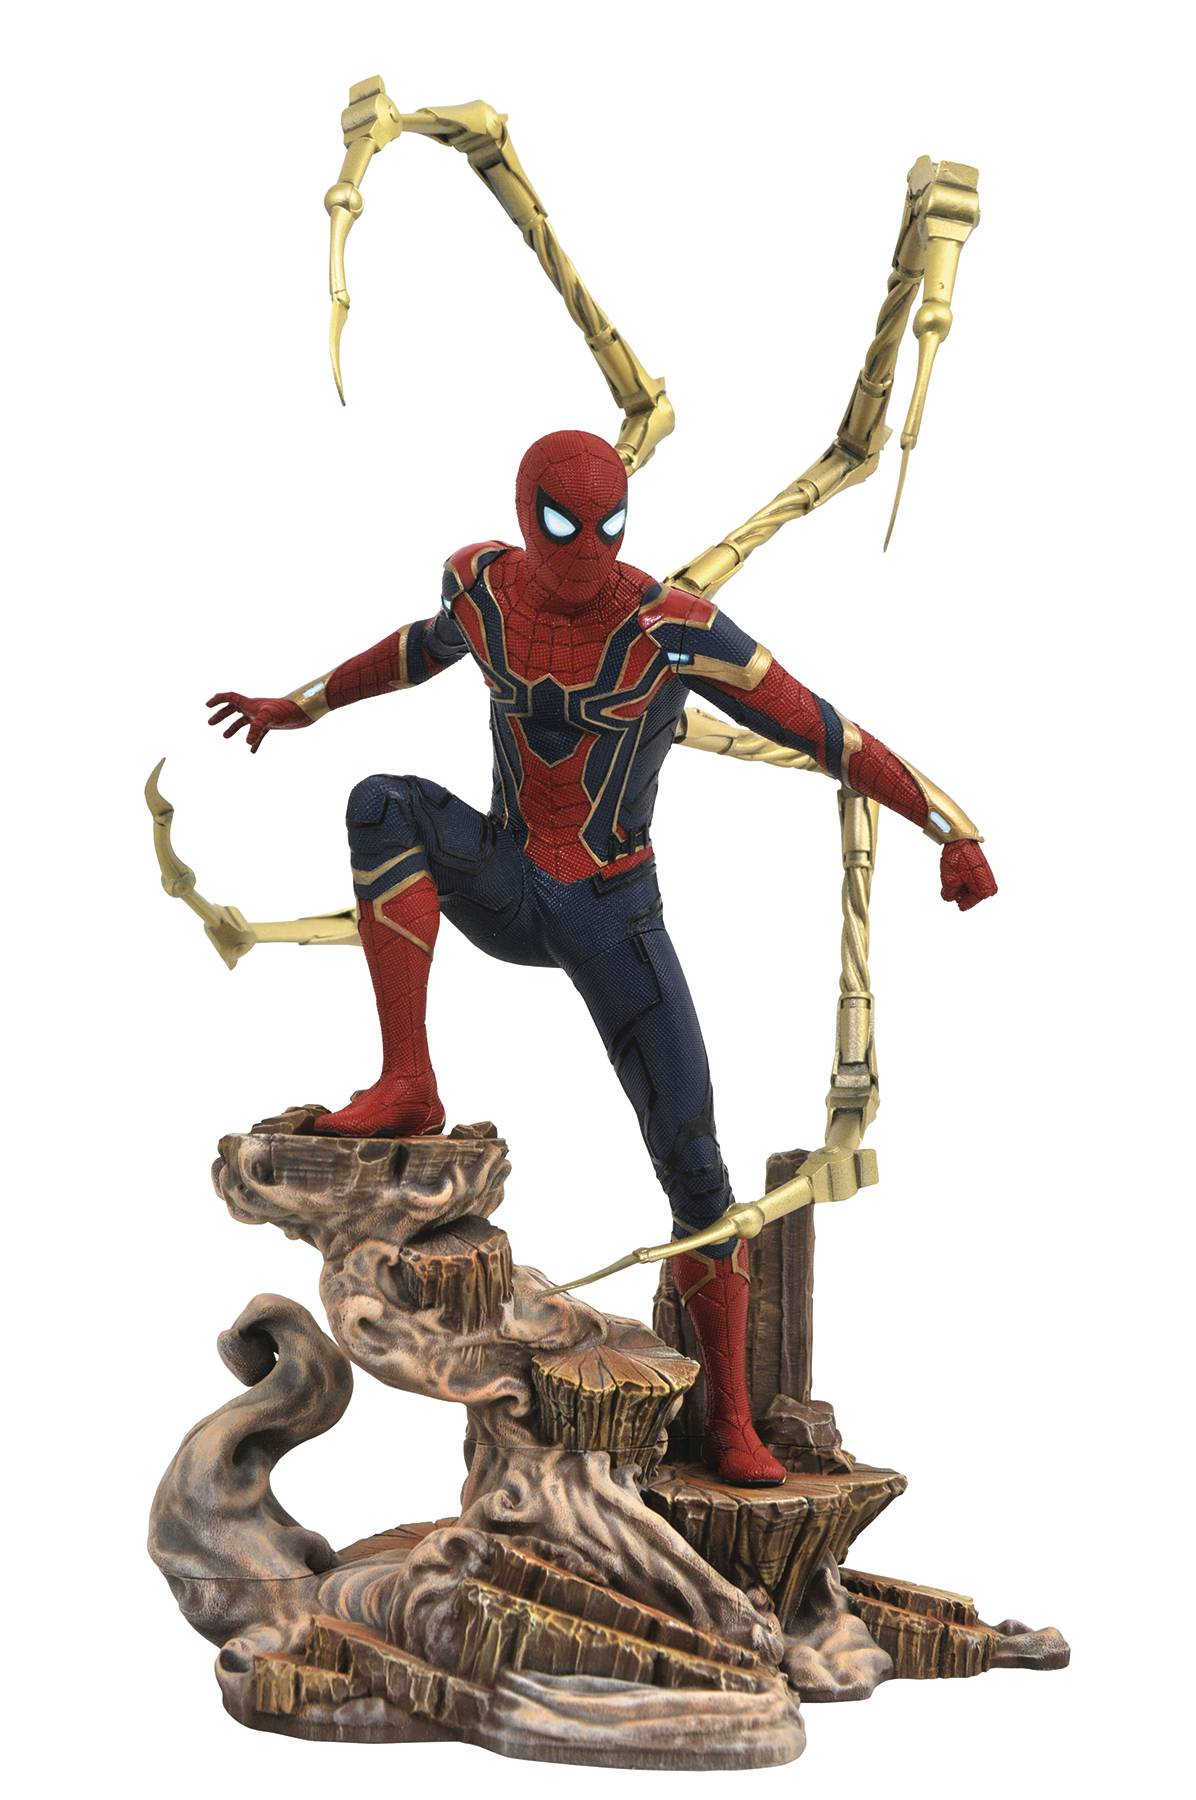 Marvel Gallery Avengers 3 Iron Spider-Man PVC Figure